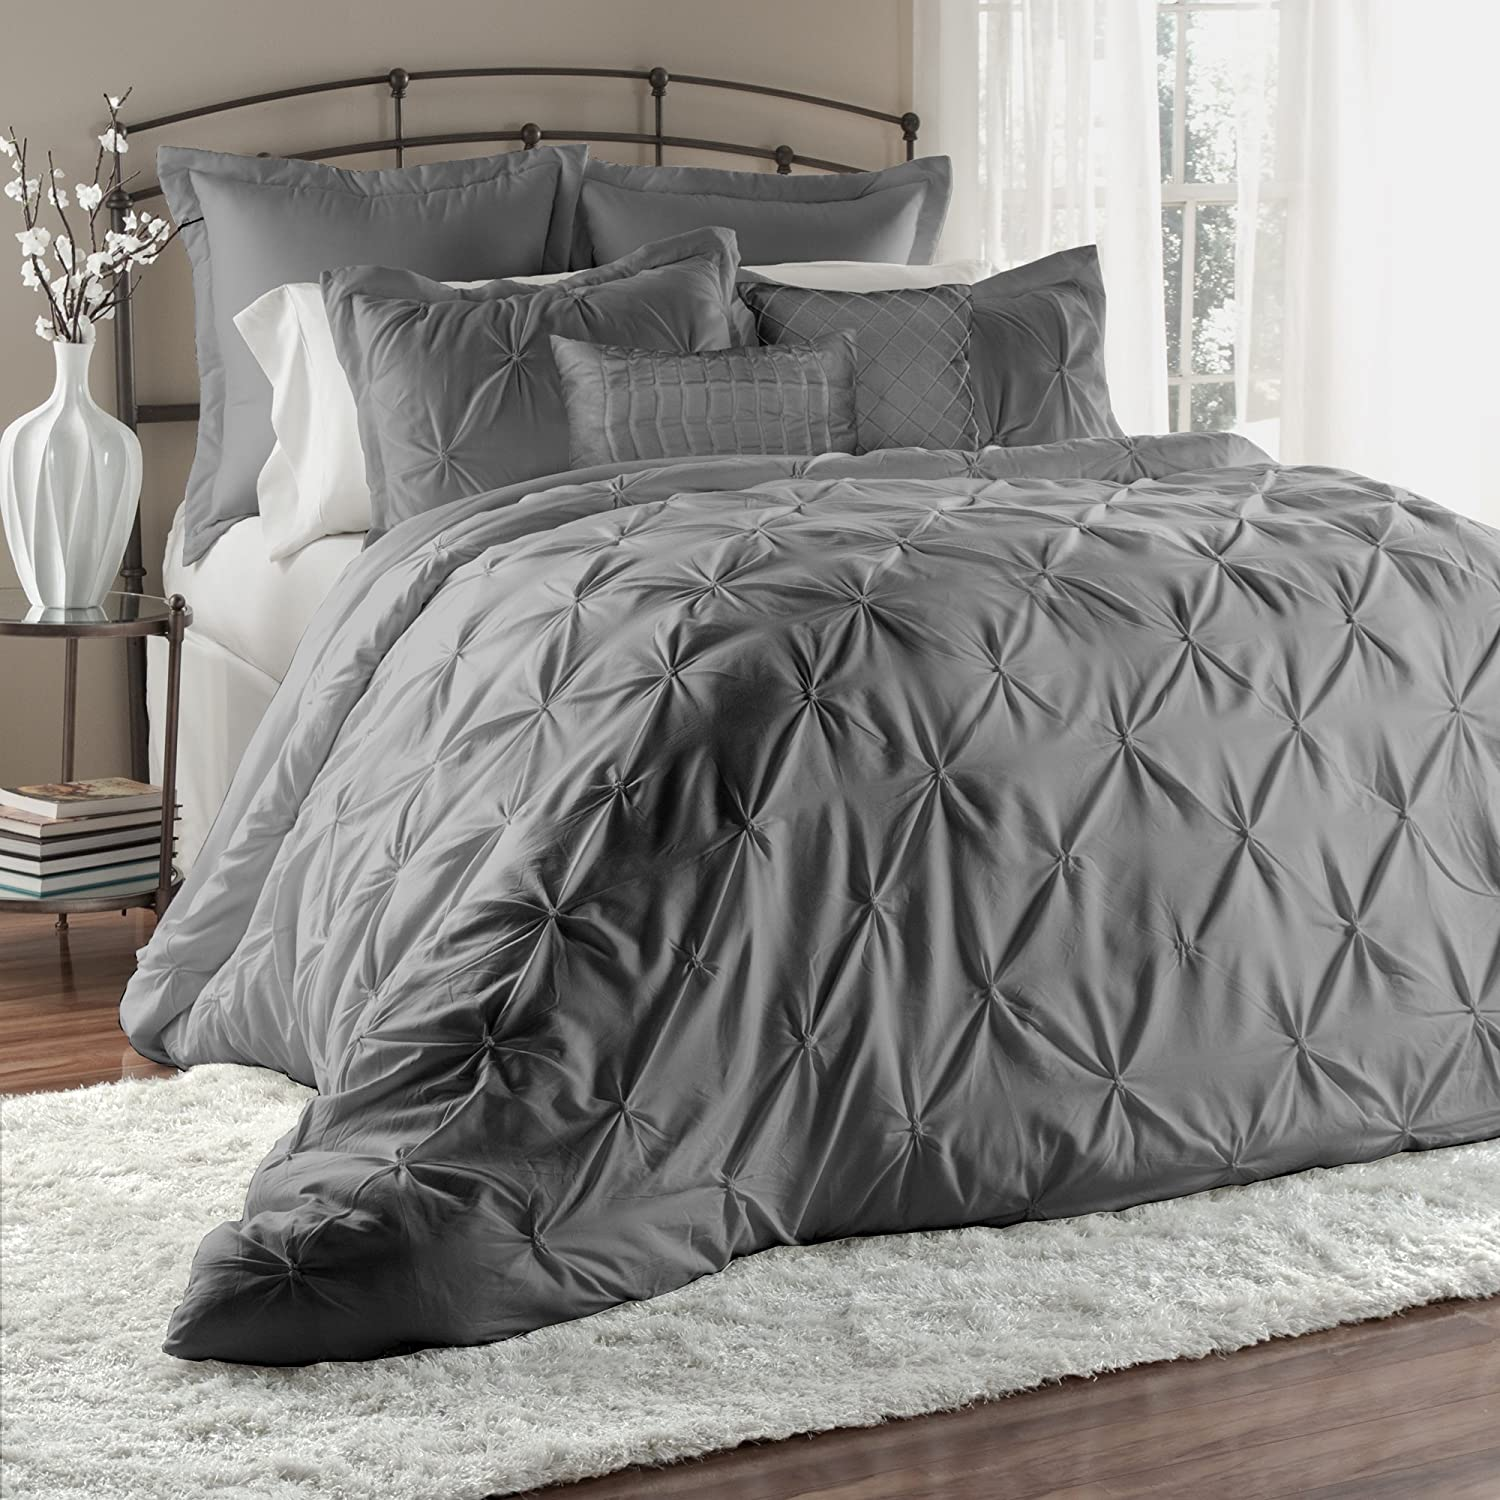 index sets style inlays natural departments grey set comforter better inspired living trellis